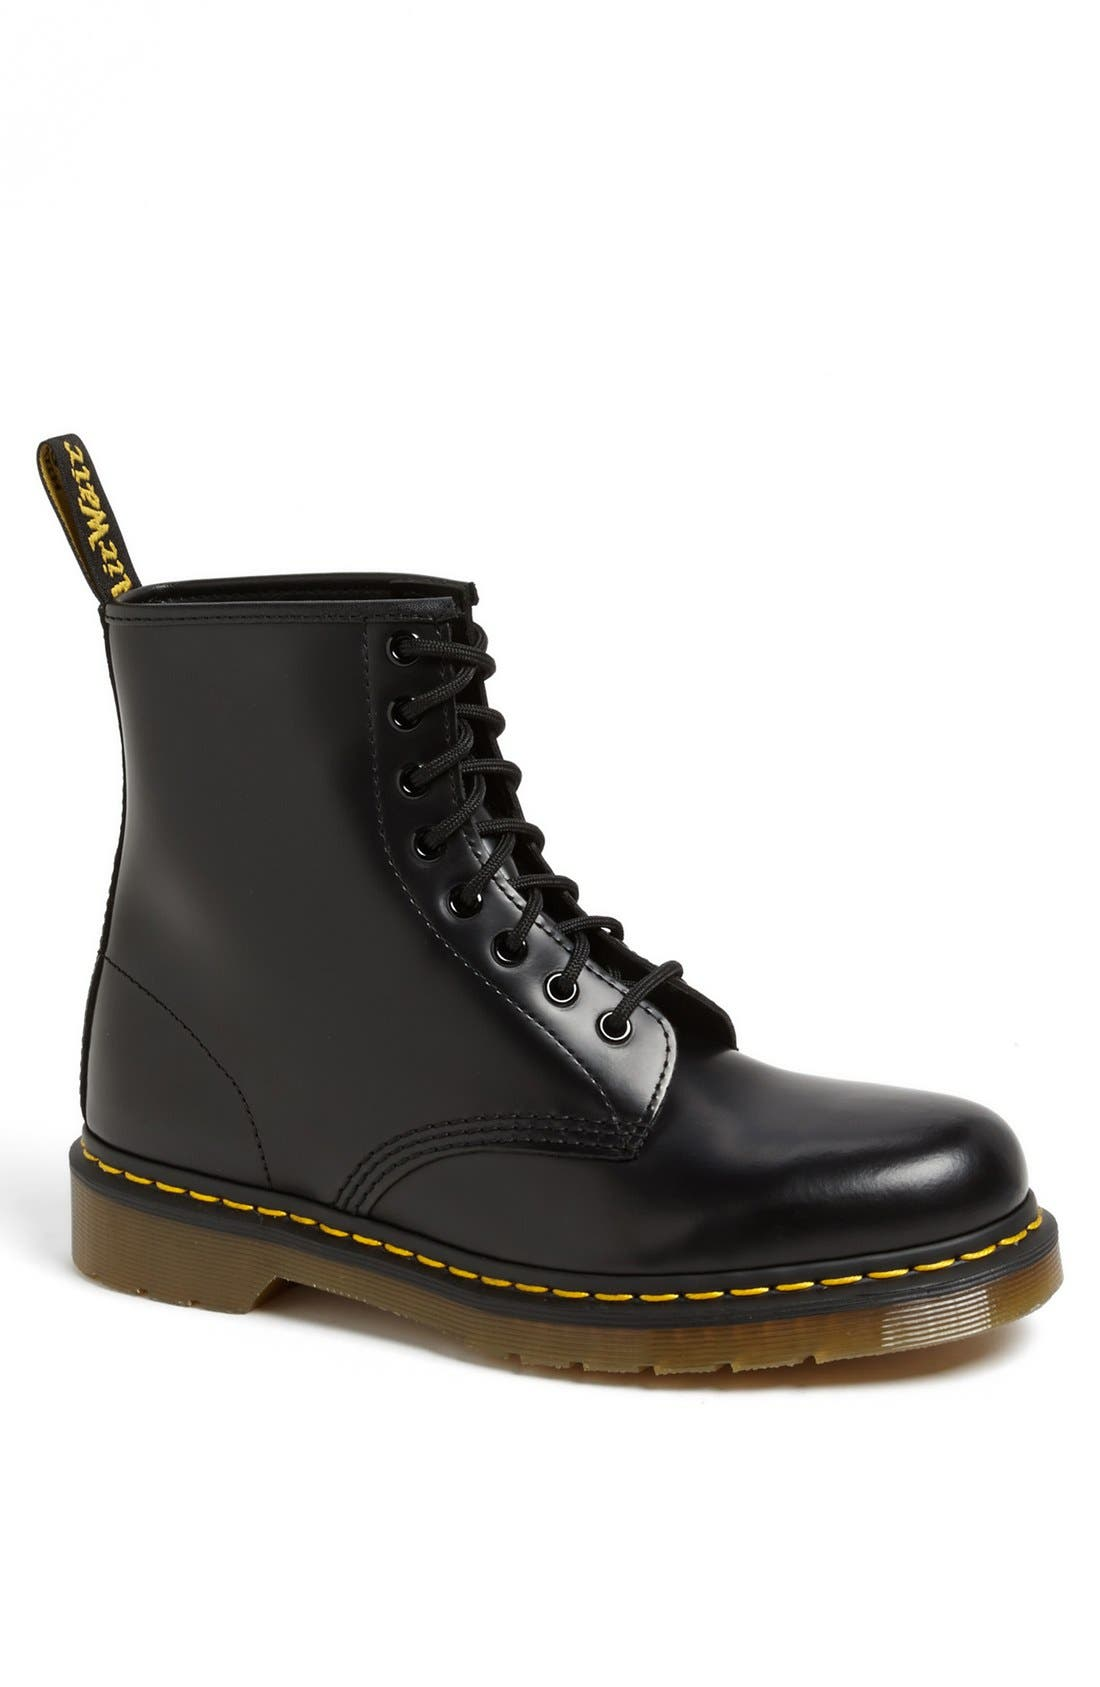 '1460' Boot,                             Main thumbnail 1, color,                             BLACK SMOOTH